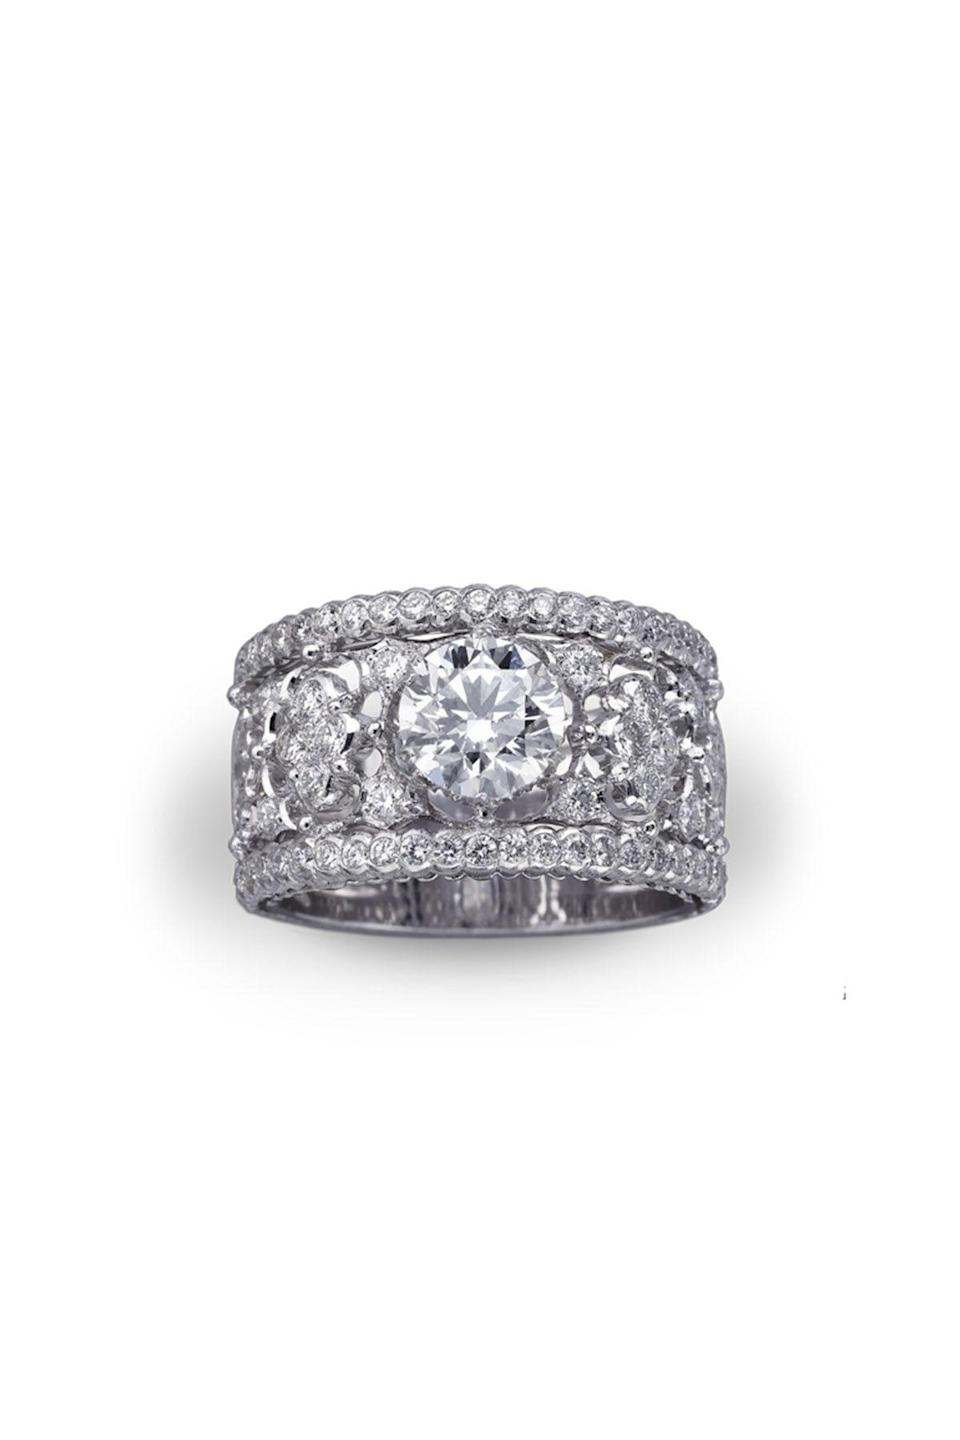 """<p><strong>Buccellati</strong></p><p>buccellati.com</p><p><a href=""""https://us.buccellati.com/en/bridal/romanza/carlotta-ring"""" rel=""""nofollow noopener"""" target=""""_blank"""" data-ylk=""""slk:Shop Now"""" class=""""link rapid-noclick-resp"""">Shop Now</a></p><p>A beautiful option for the bride-to-be that is looking for the perfect vintage style. A multi-band silhouette provides all the needed sparkle!</p>"""